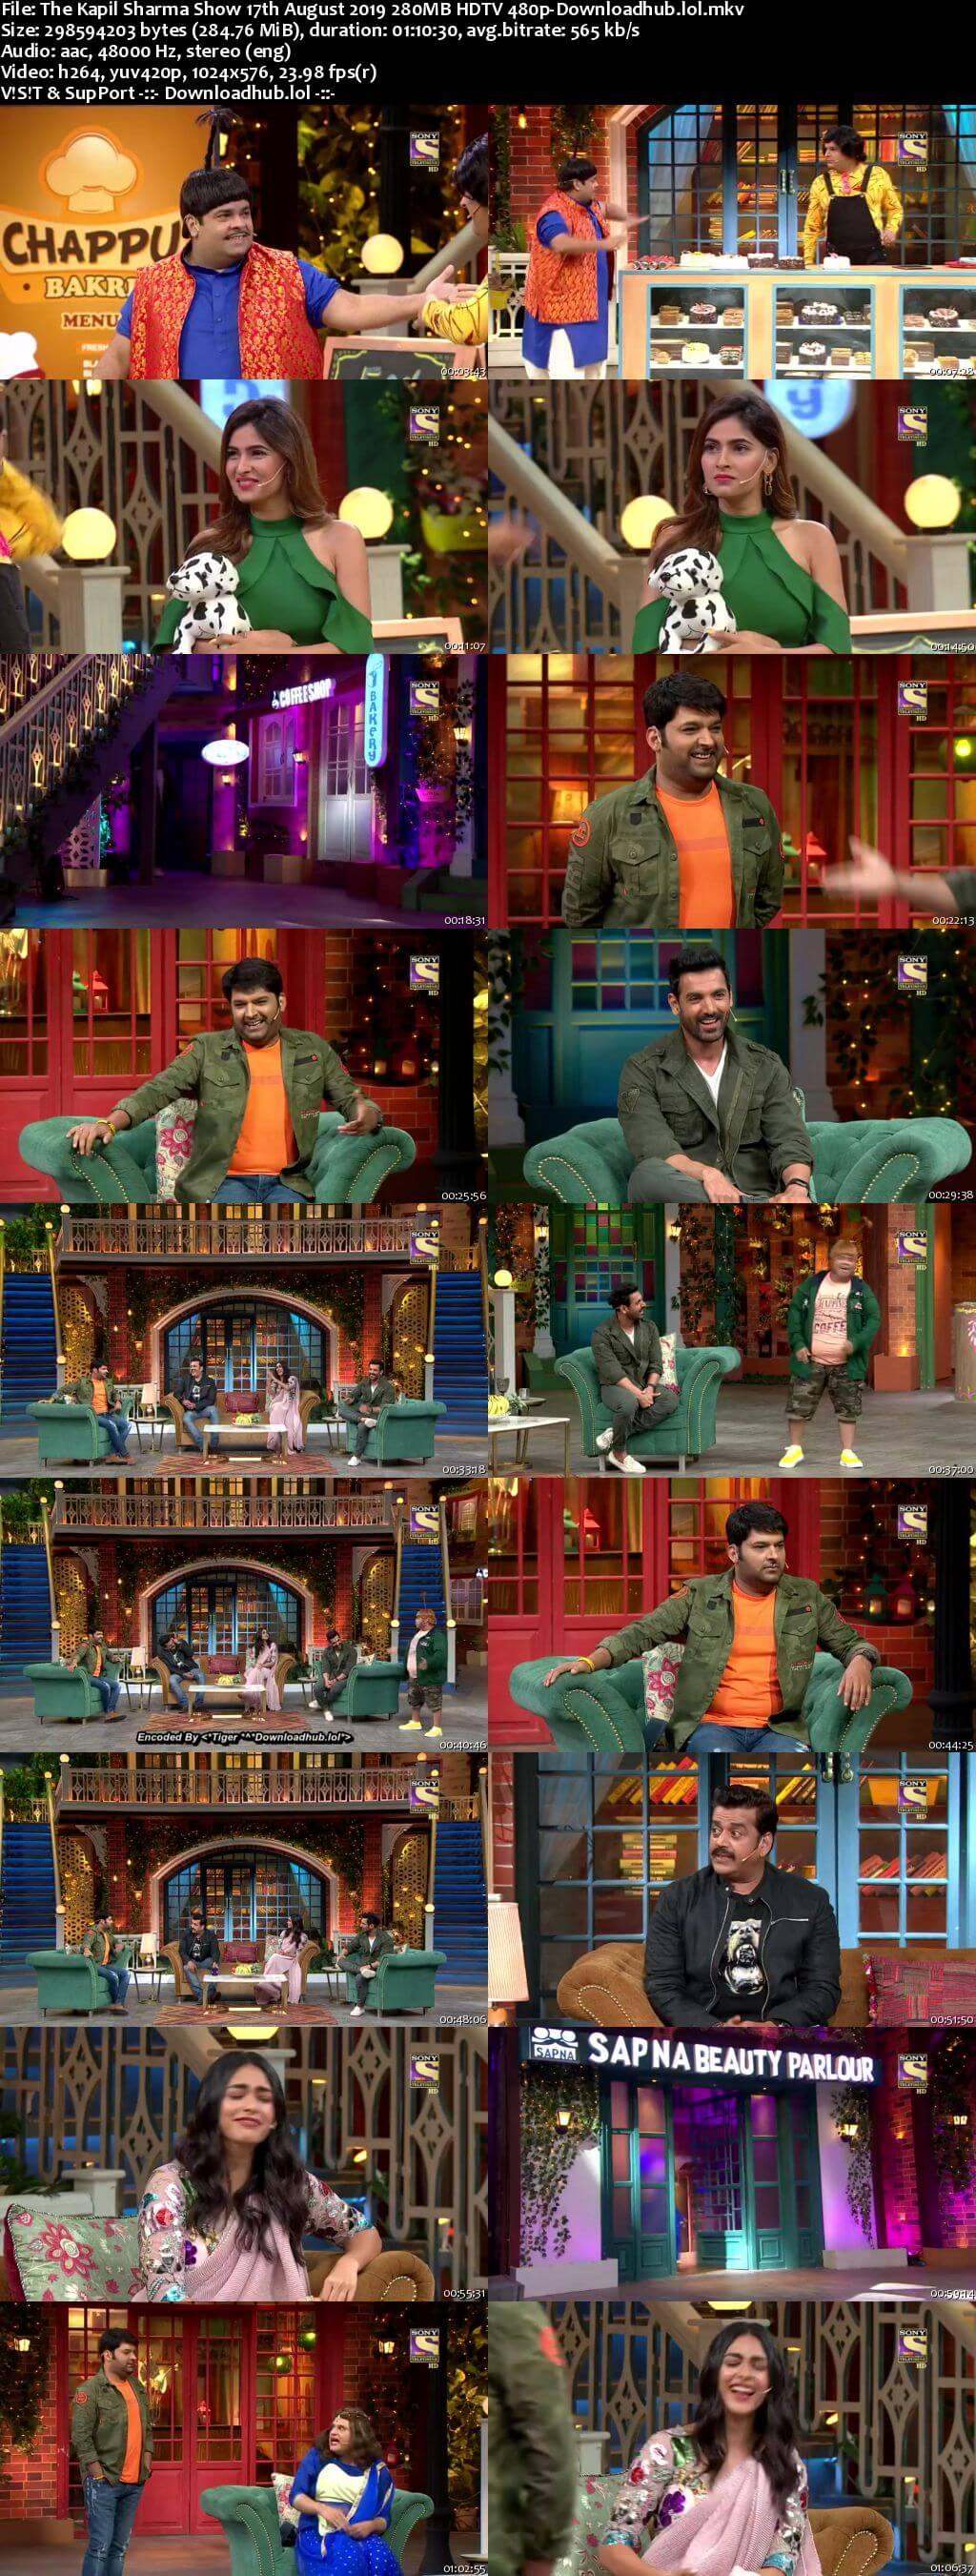 The Kapil Sharma Show 17 August 2019 Episode 66 HDTV 480p